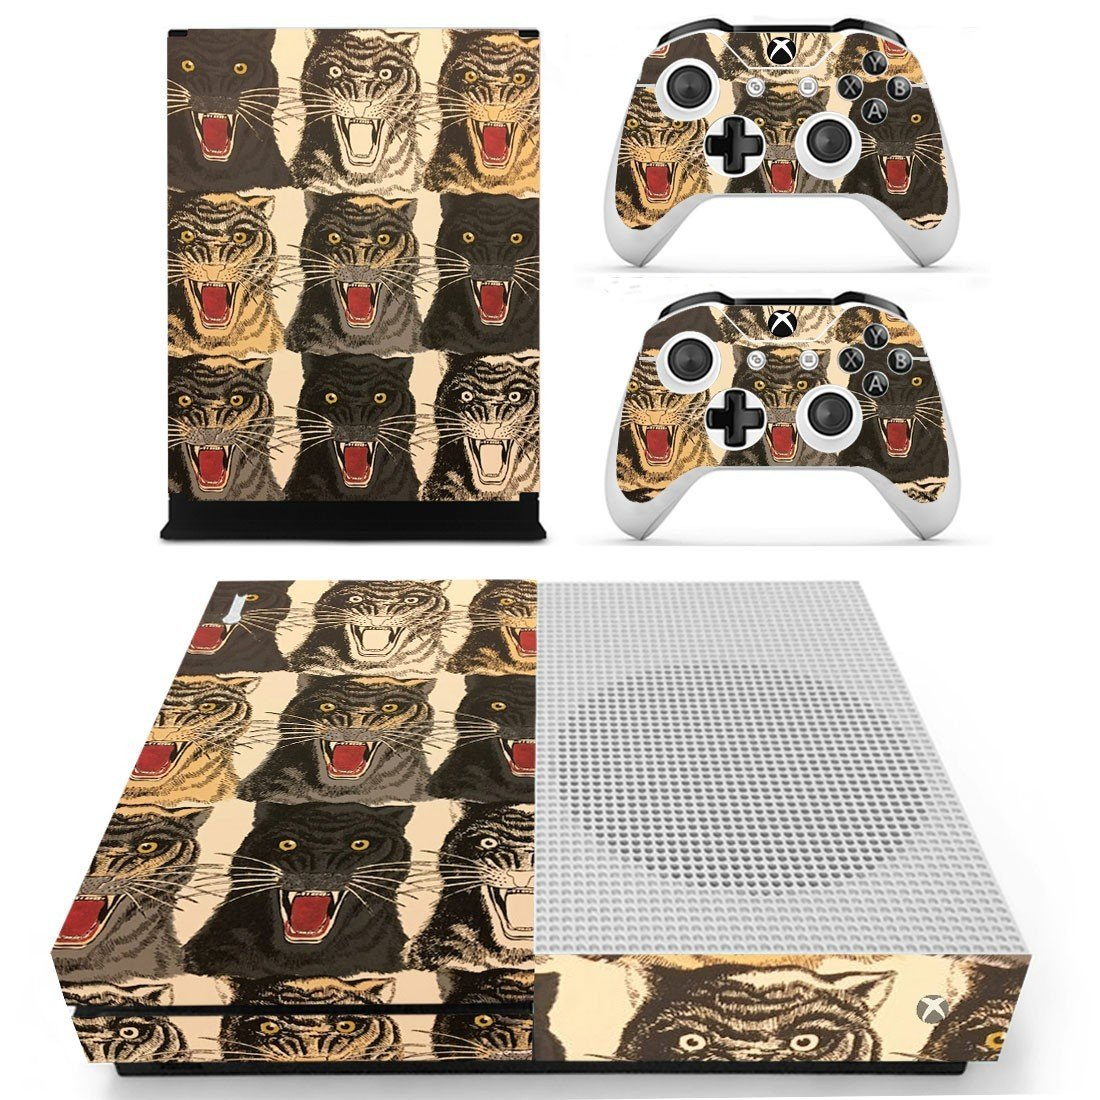 Tiger face decal skin sticker for Xbox One S console and controllers